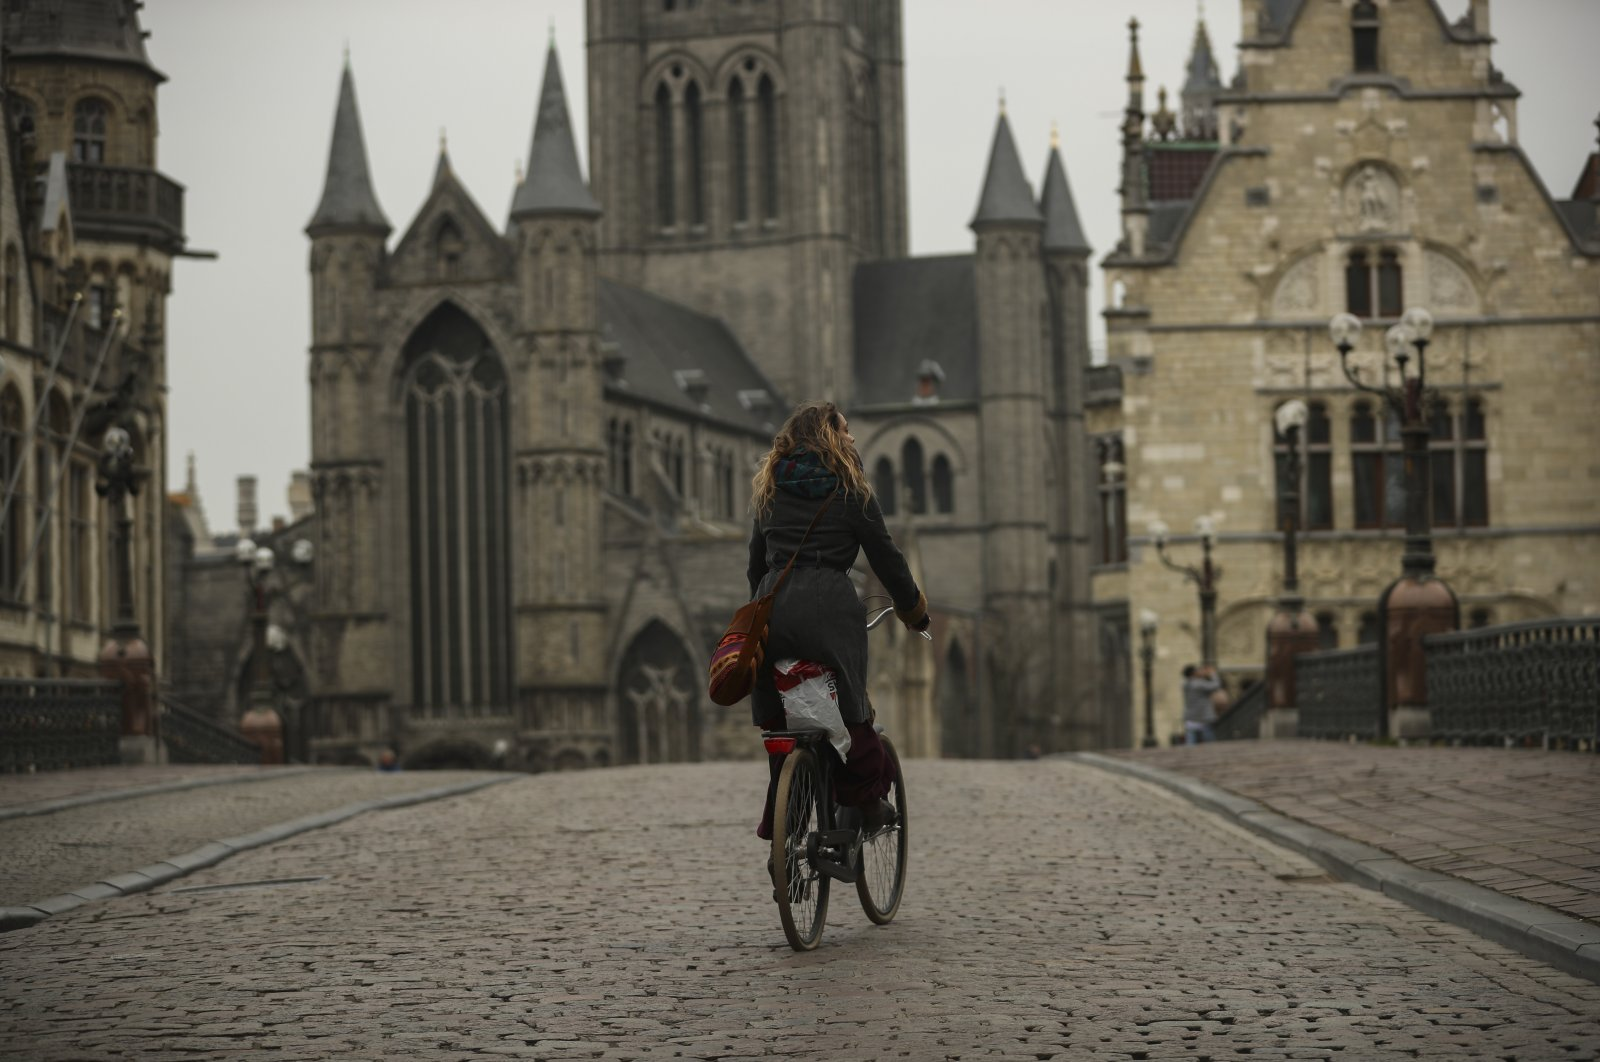 A woman rides a bicycle in downtown Ghent, Belgium, Thursday, March 19, 2020. (AP Photo)